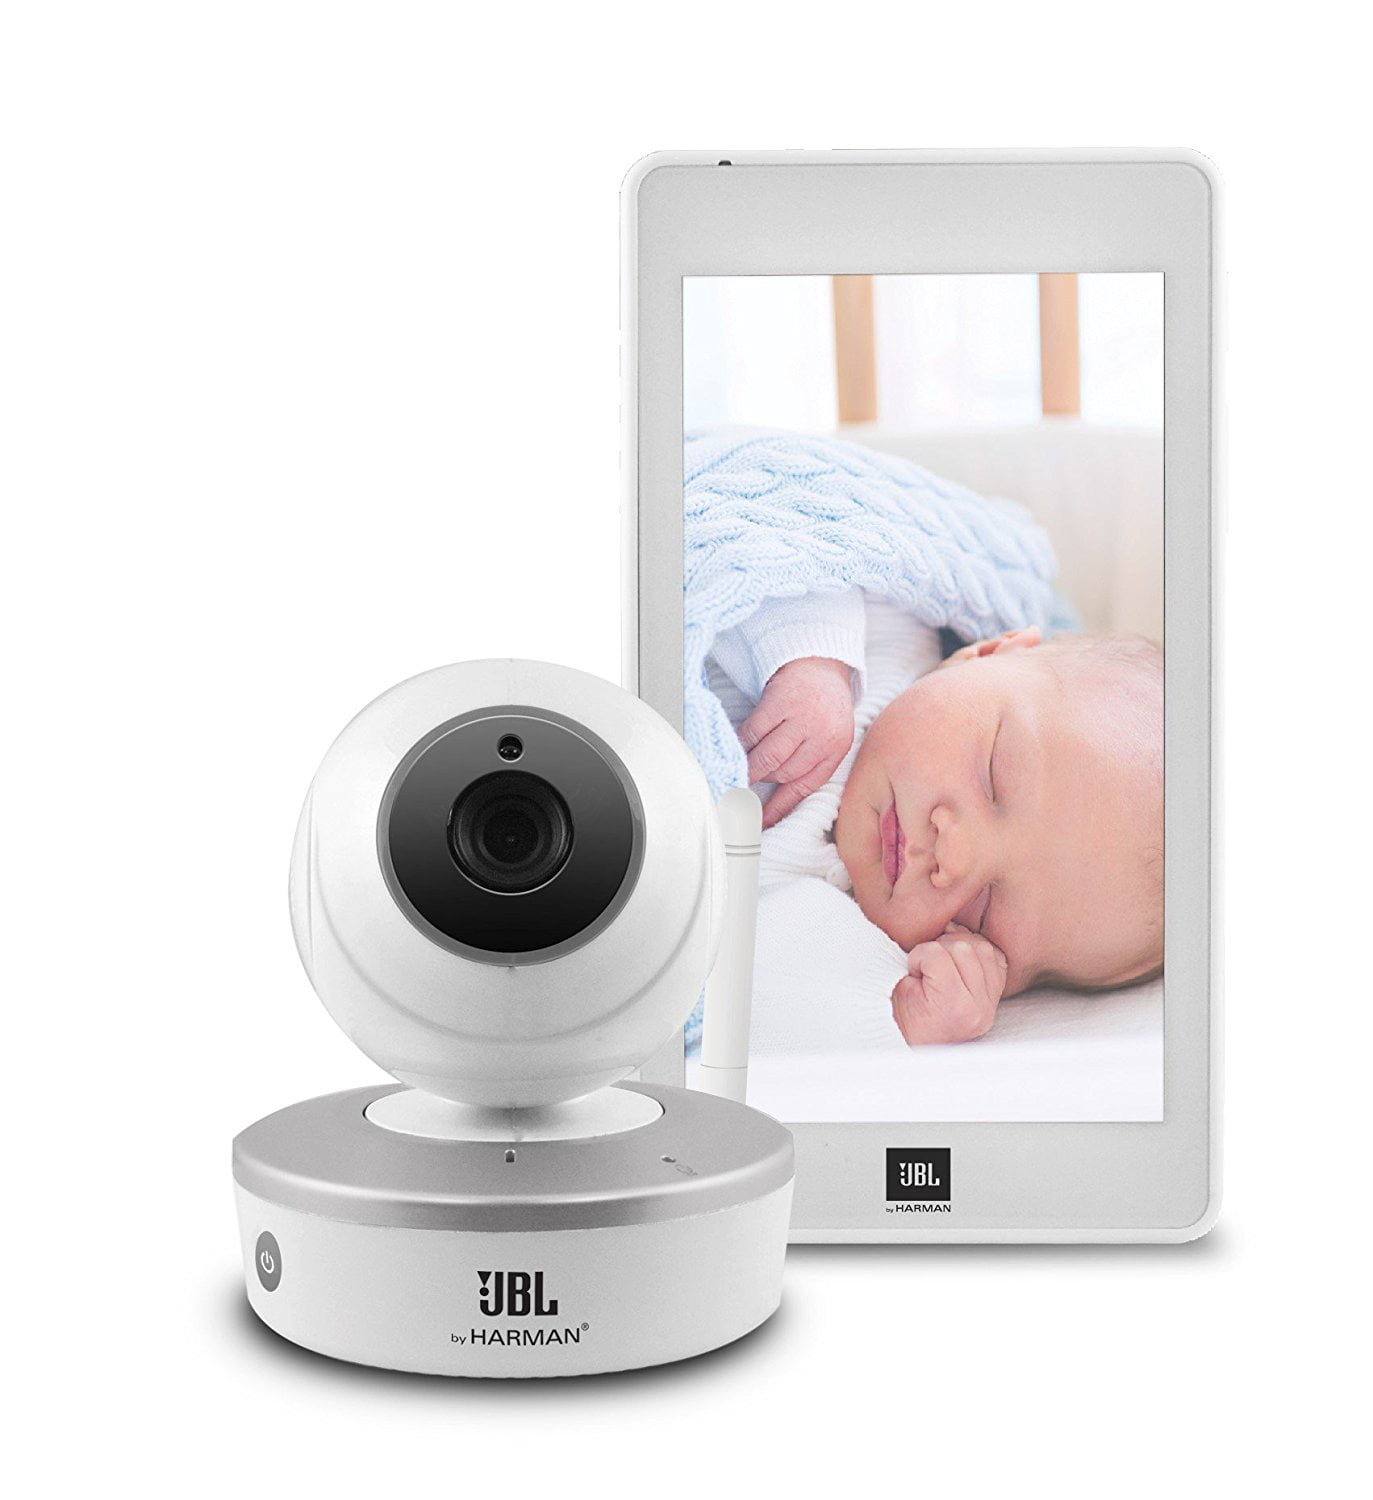 JBL HARMAN Quad-Core HD Tablet with Baby Monitor by Ematic